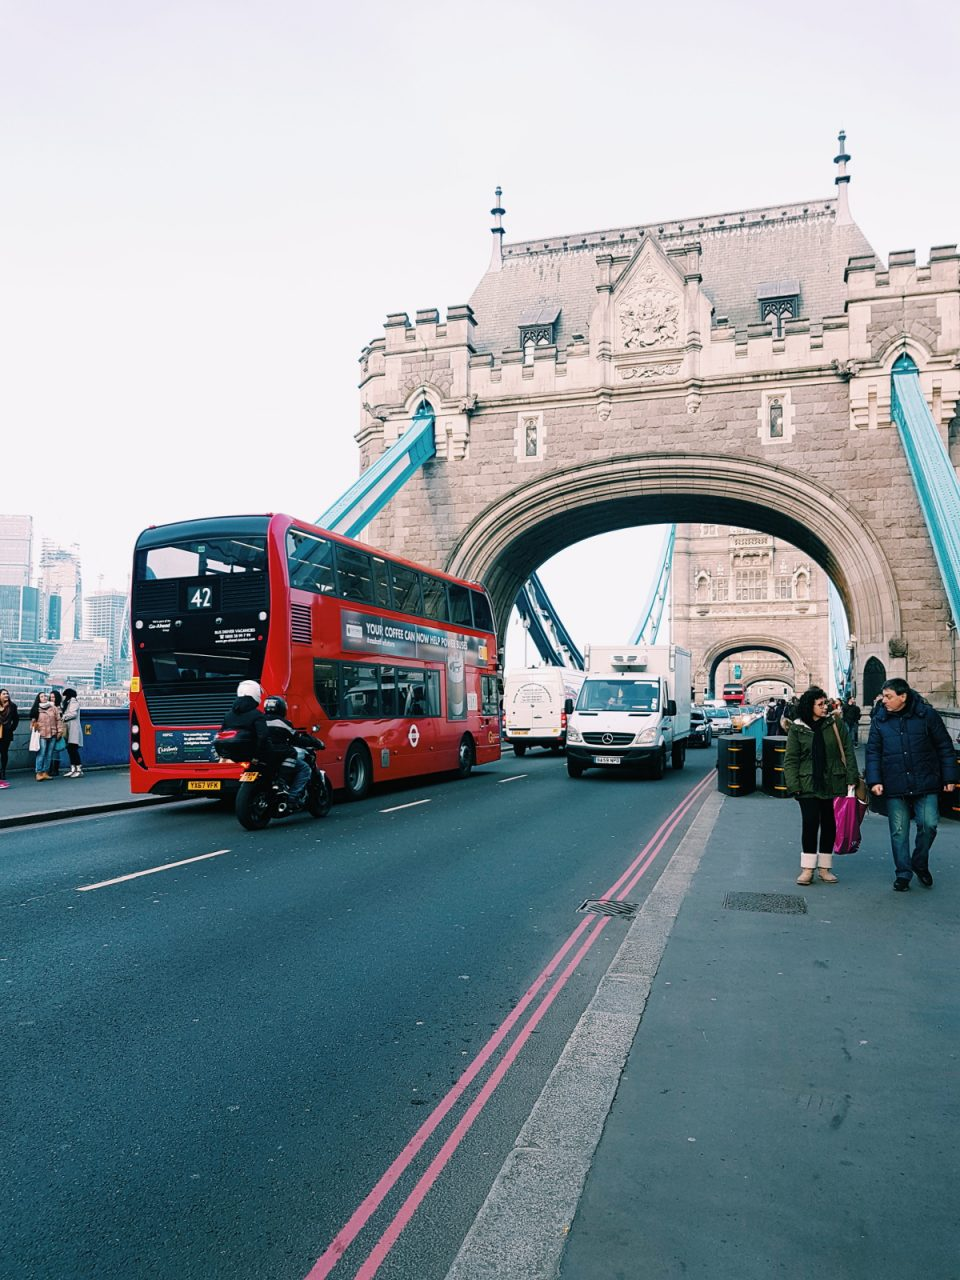 london-tipp-sightseeing-tower-bridge